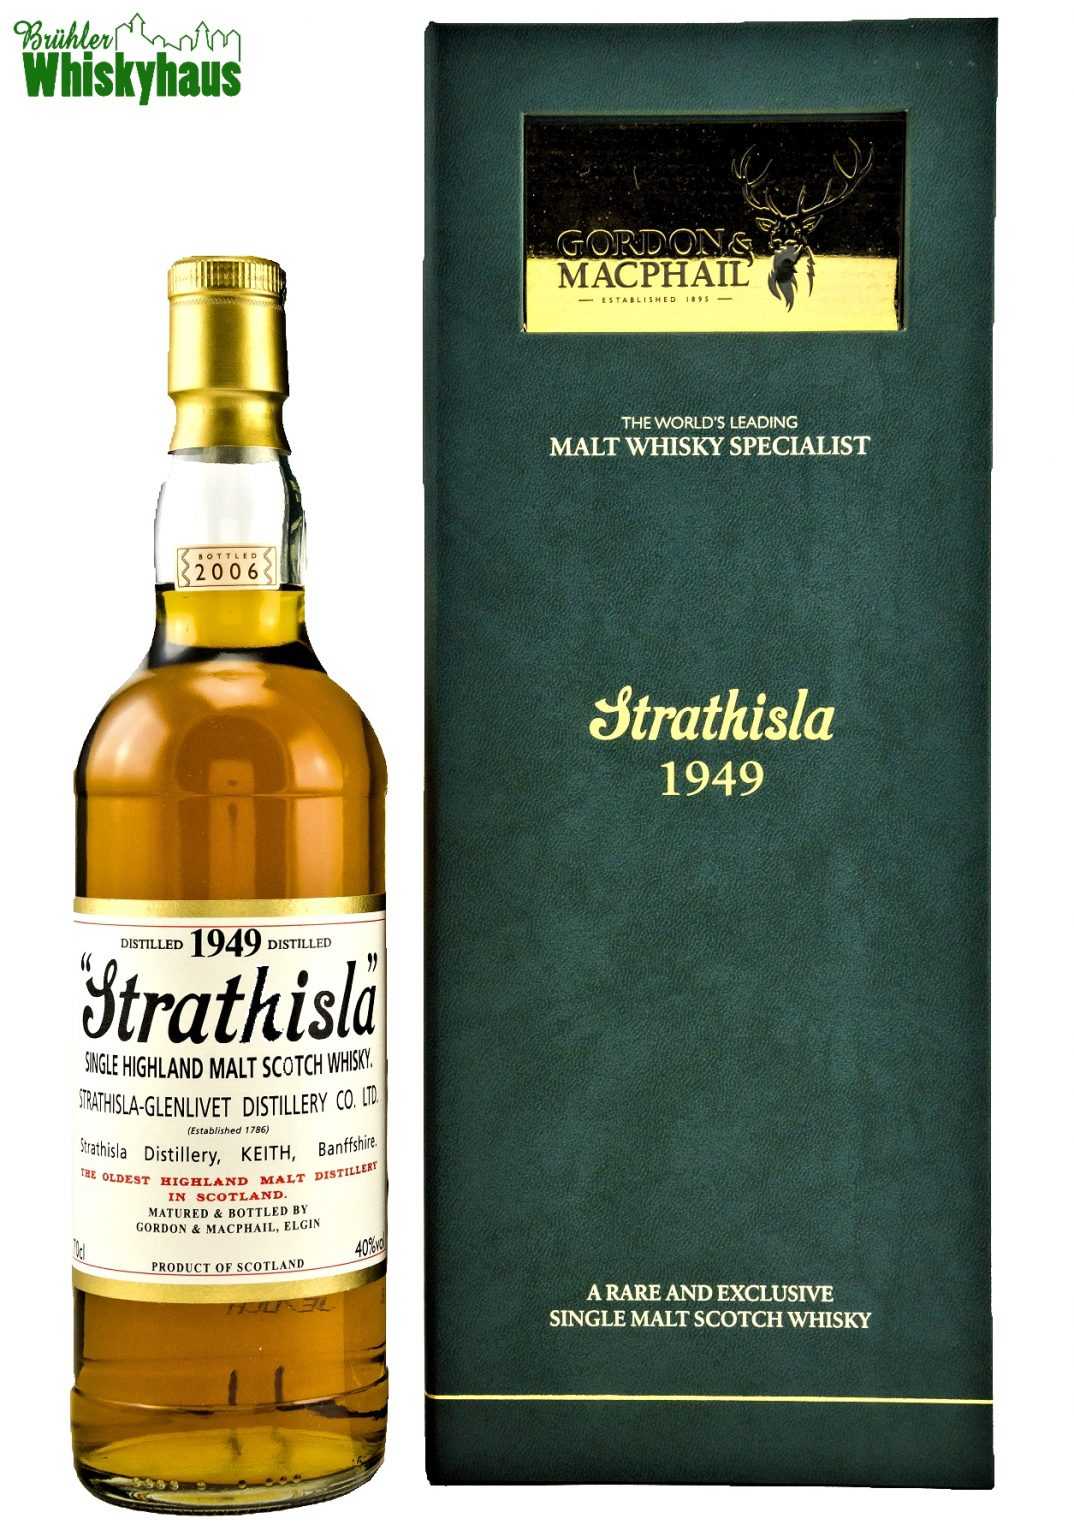 Strathisla Vintage 1949 - 56 Jahre - Refill Sherry Butt No. 384 - Gordon & MacPhail - Single Malt Scotch Whisky